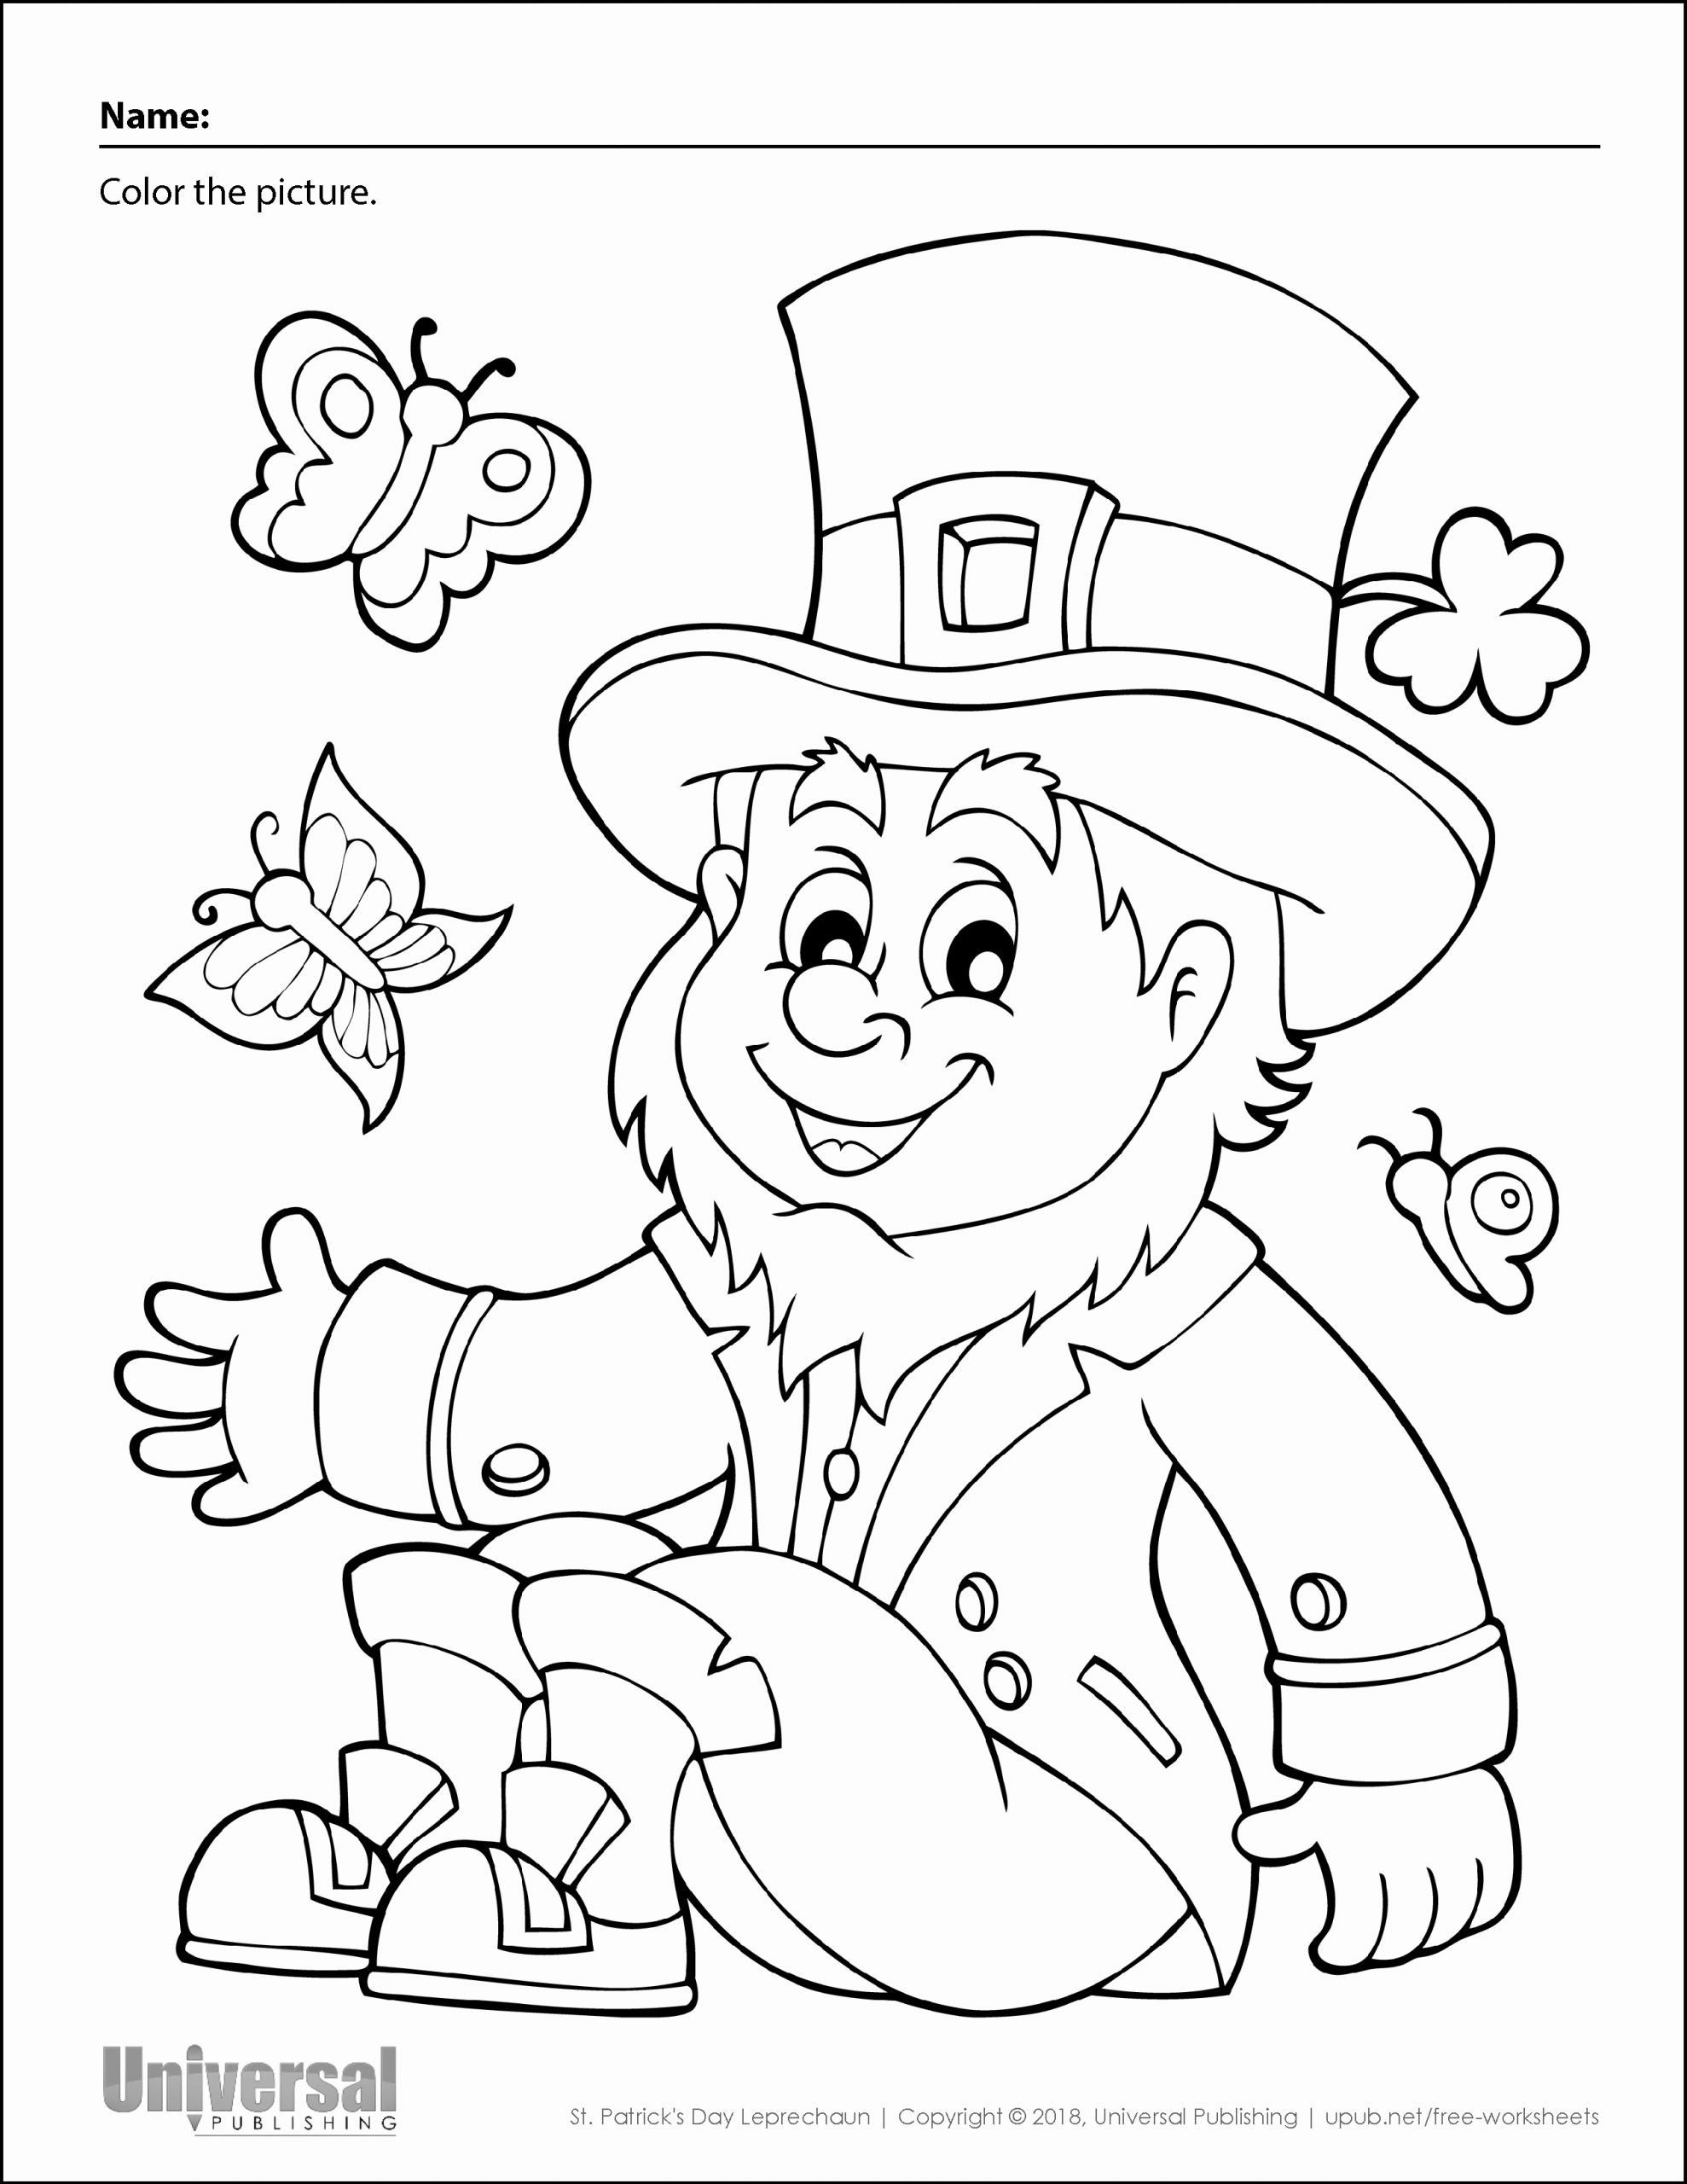 Pin By Michelle Allen On Creative Ideas Inspiration Ninjago Coloring Pages Mothers Day Coloring Pages Printable Coloring Pages [ 2560 x 1978 Pixel ]